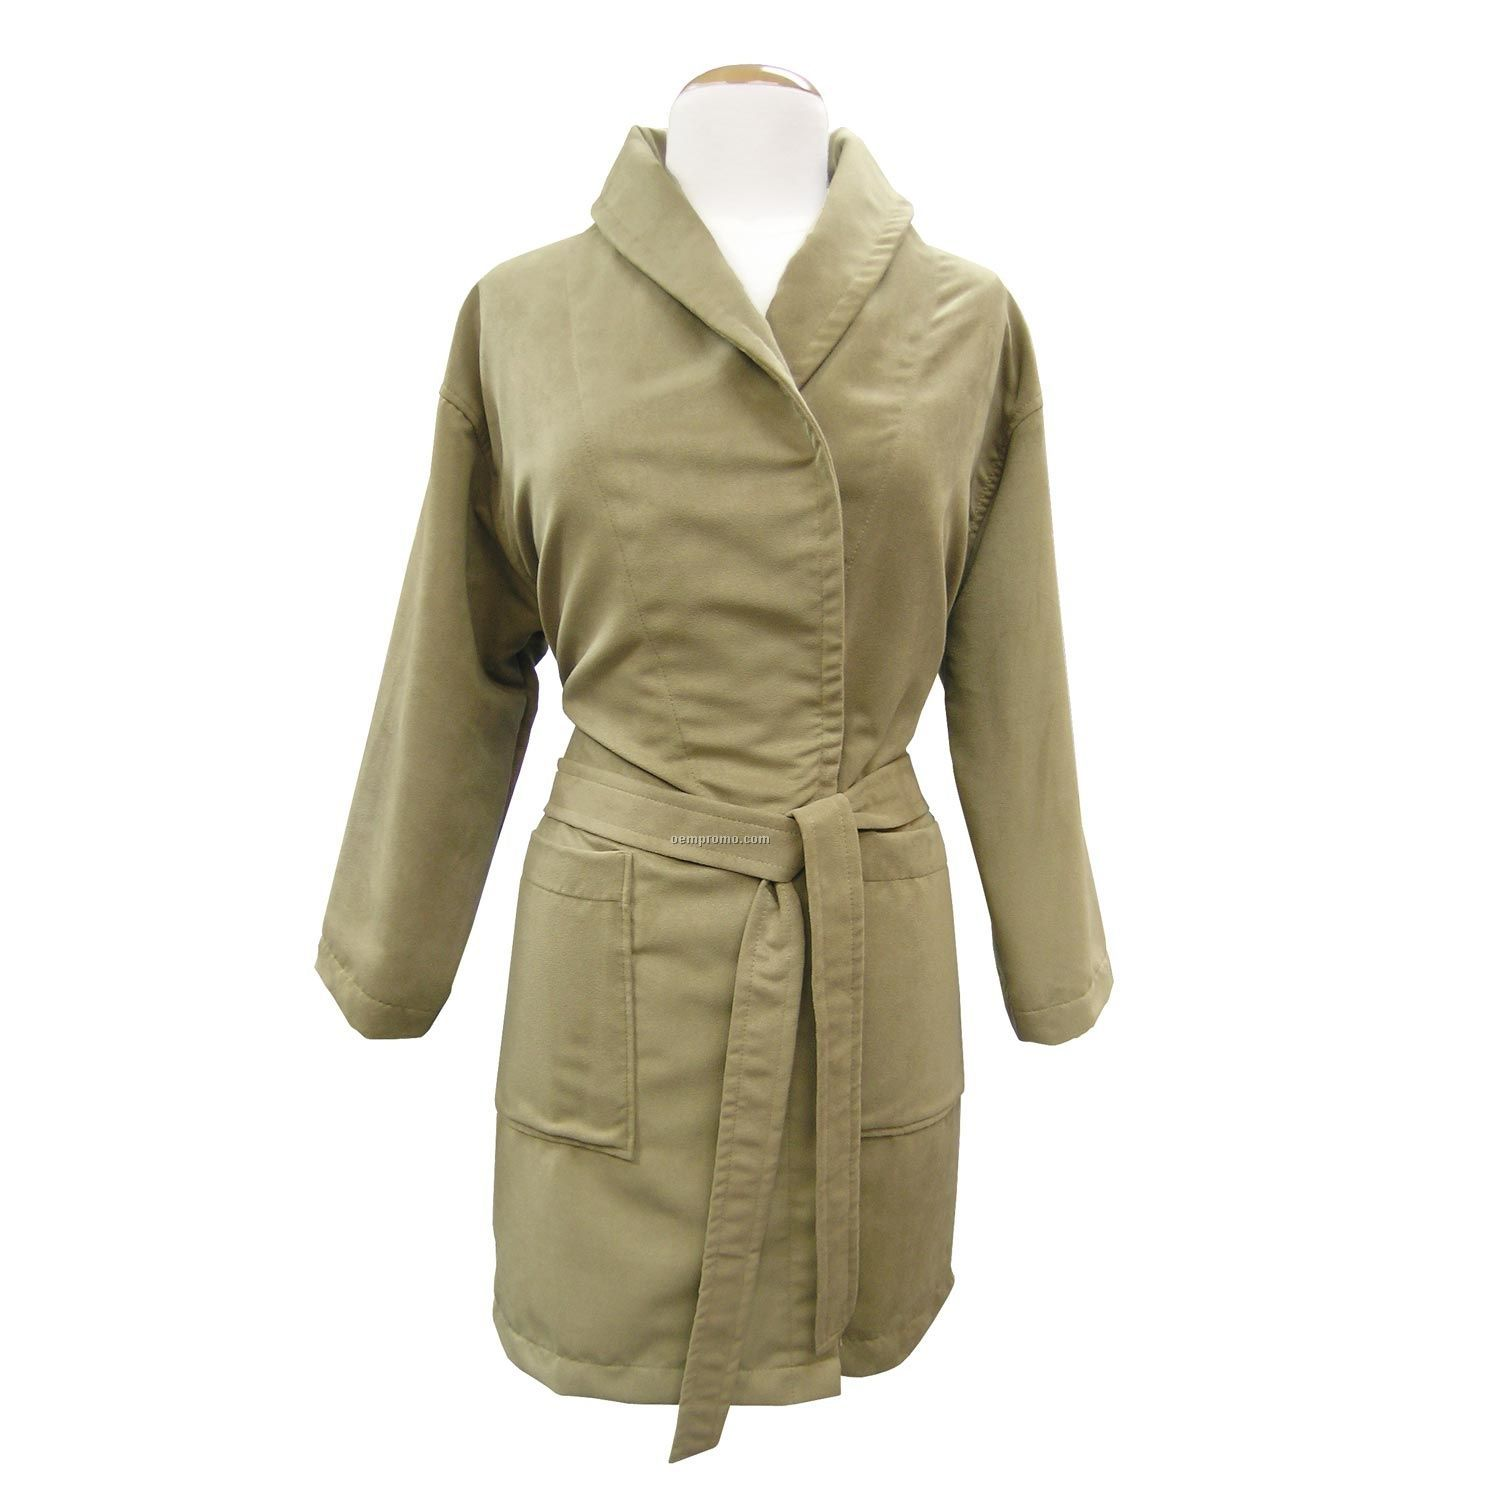 House Coat: Ladies Lounge-about Microfiber Suede House Coat (2xs-2xl